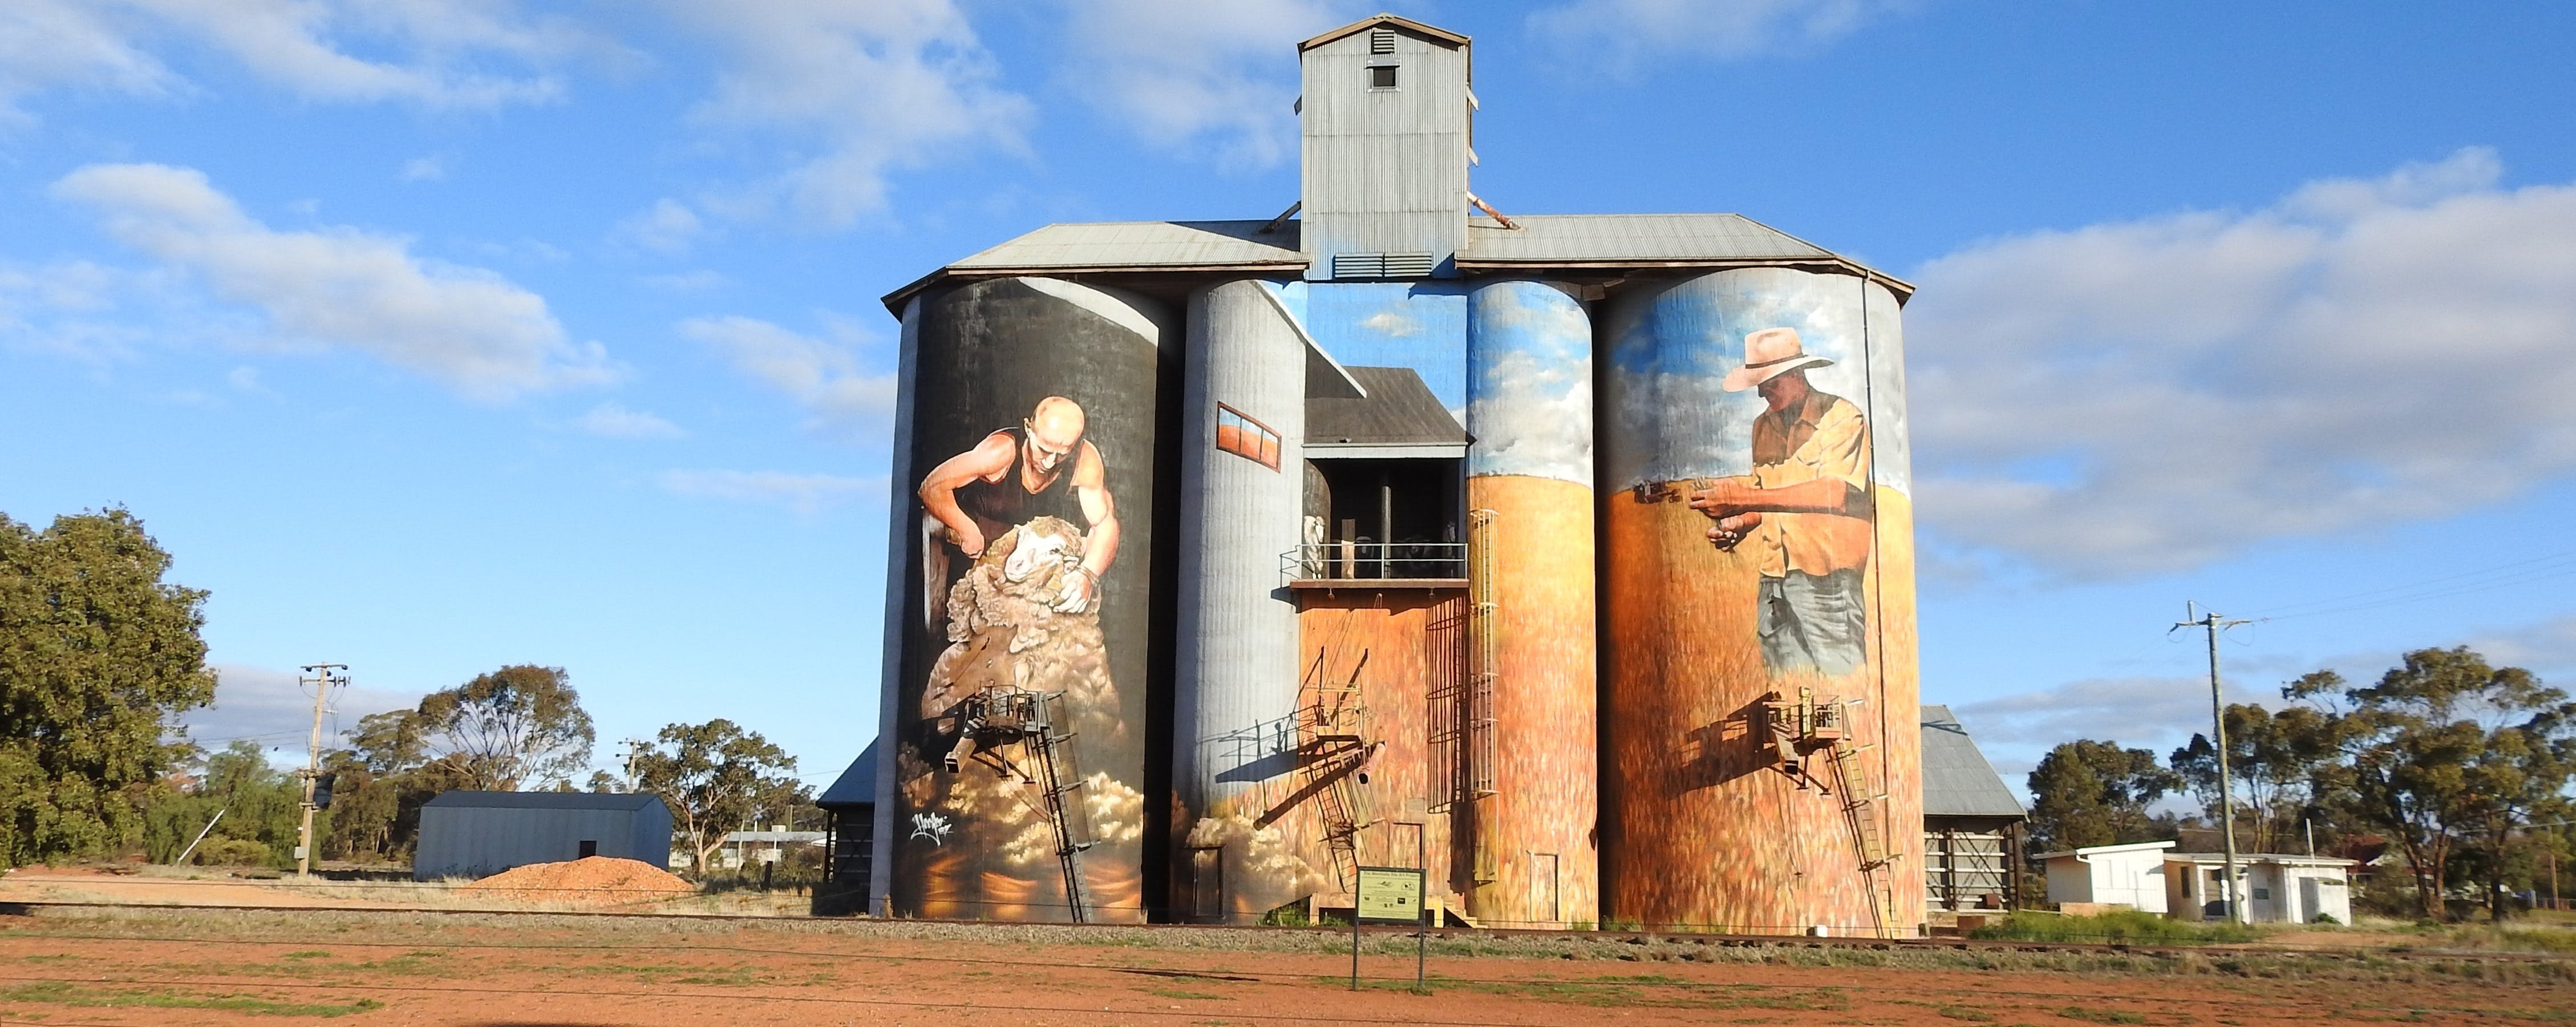 Riverina Outdoor Art Trail - Accommodation Search